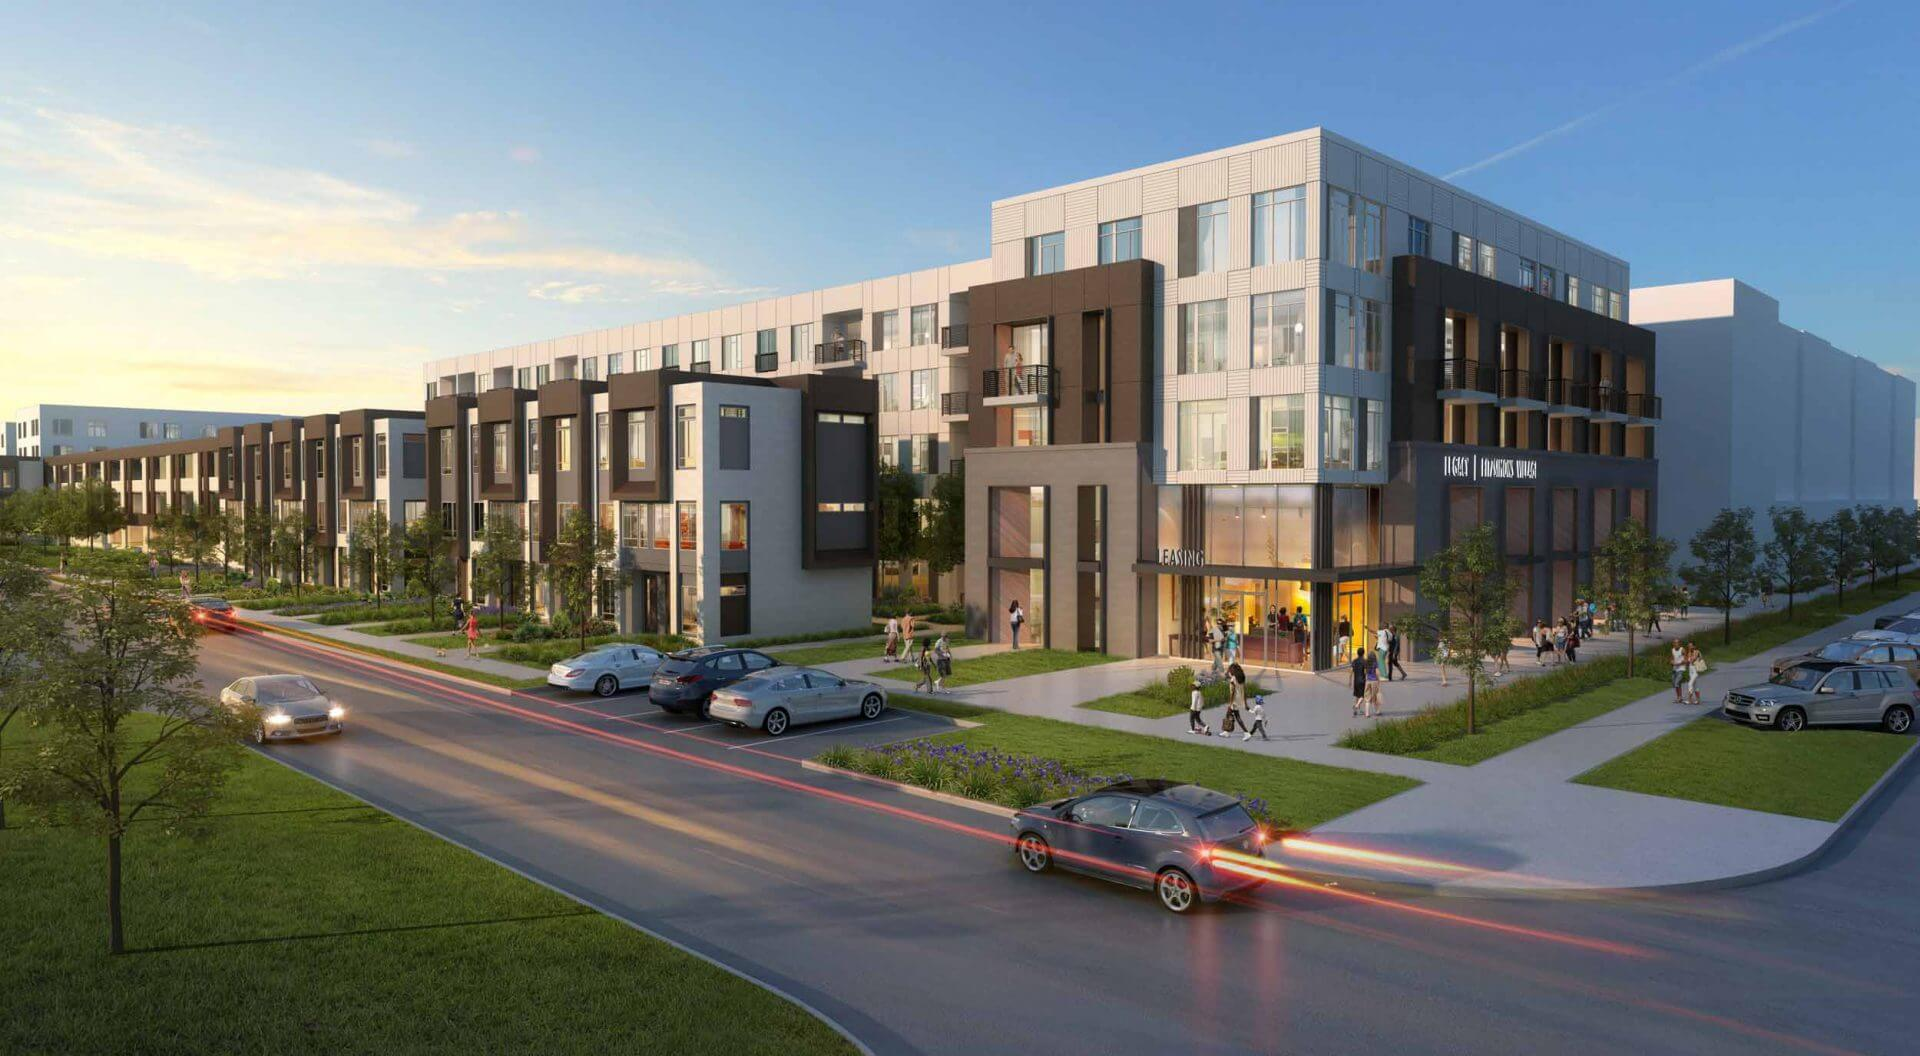 Front View of Apartments   Rendering   Legacy at Fitz